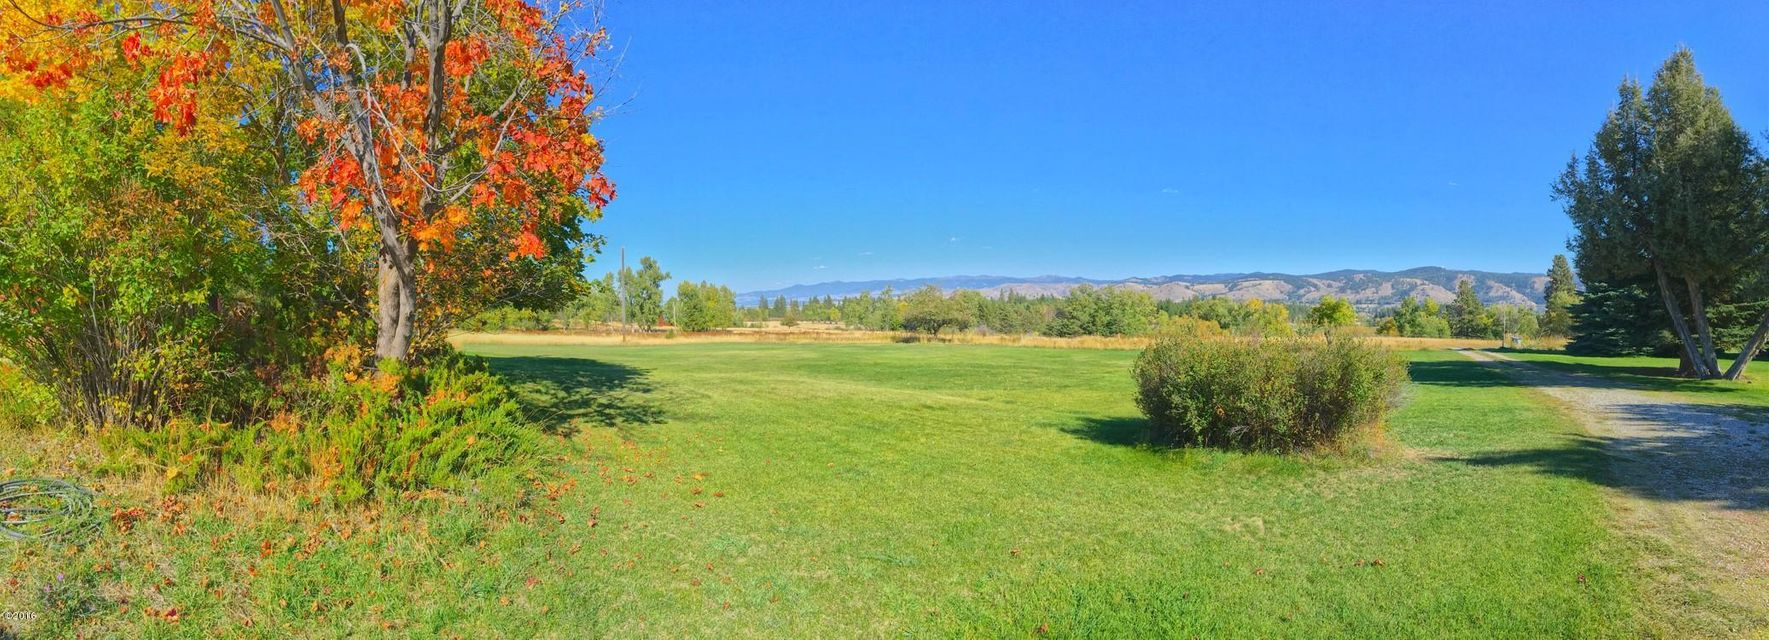 Additional photo for property listing at The Stage Stop Ranch 360  Fleet Street Hamilton, Montana,59840 Hoa Kỳ